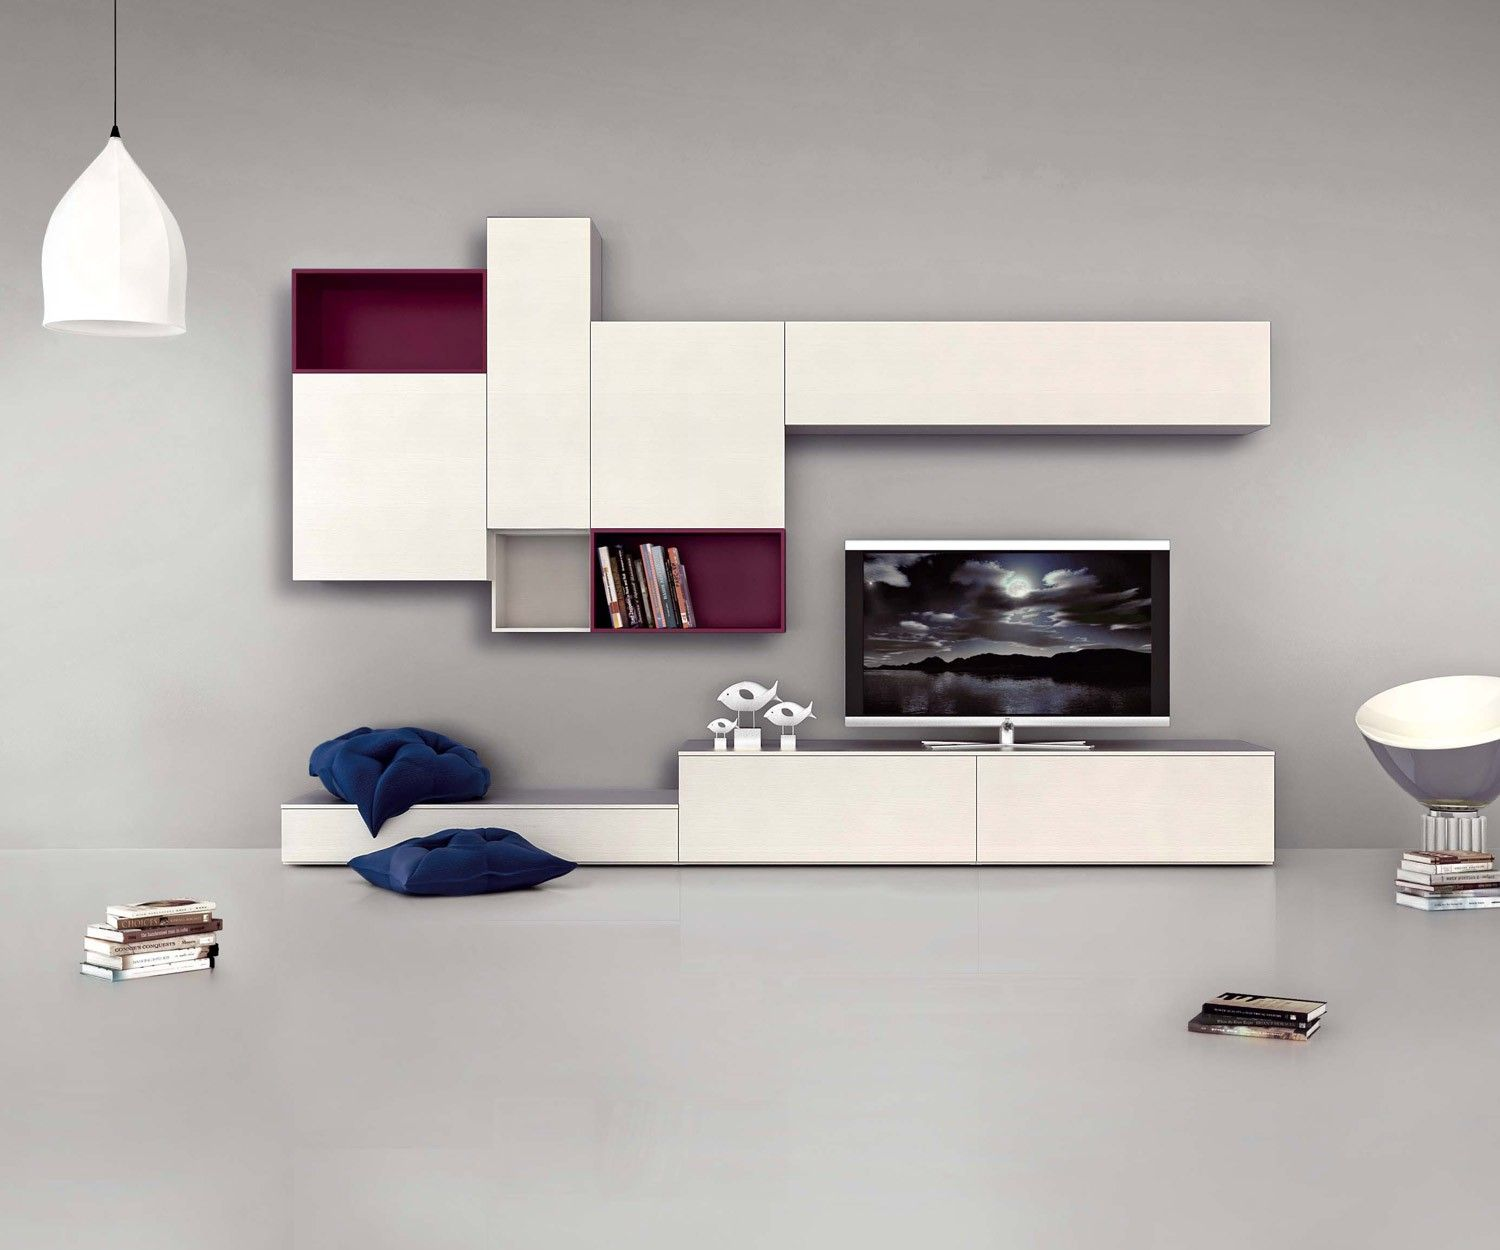 tv mbel 90 cm breit best full size of tv mobel holz danisches bettenlager schweiz ottos moebel. Black Bedroom Furniture Sets. Home Design Ideas